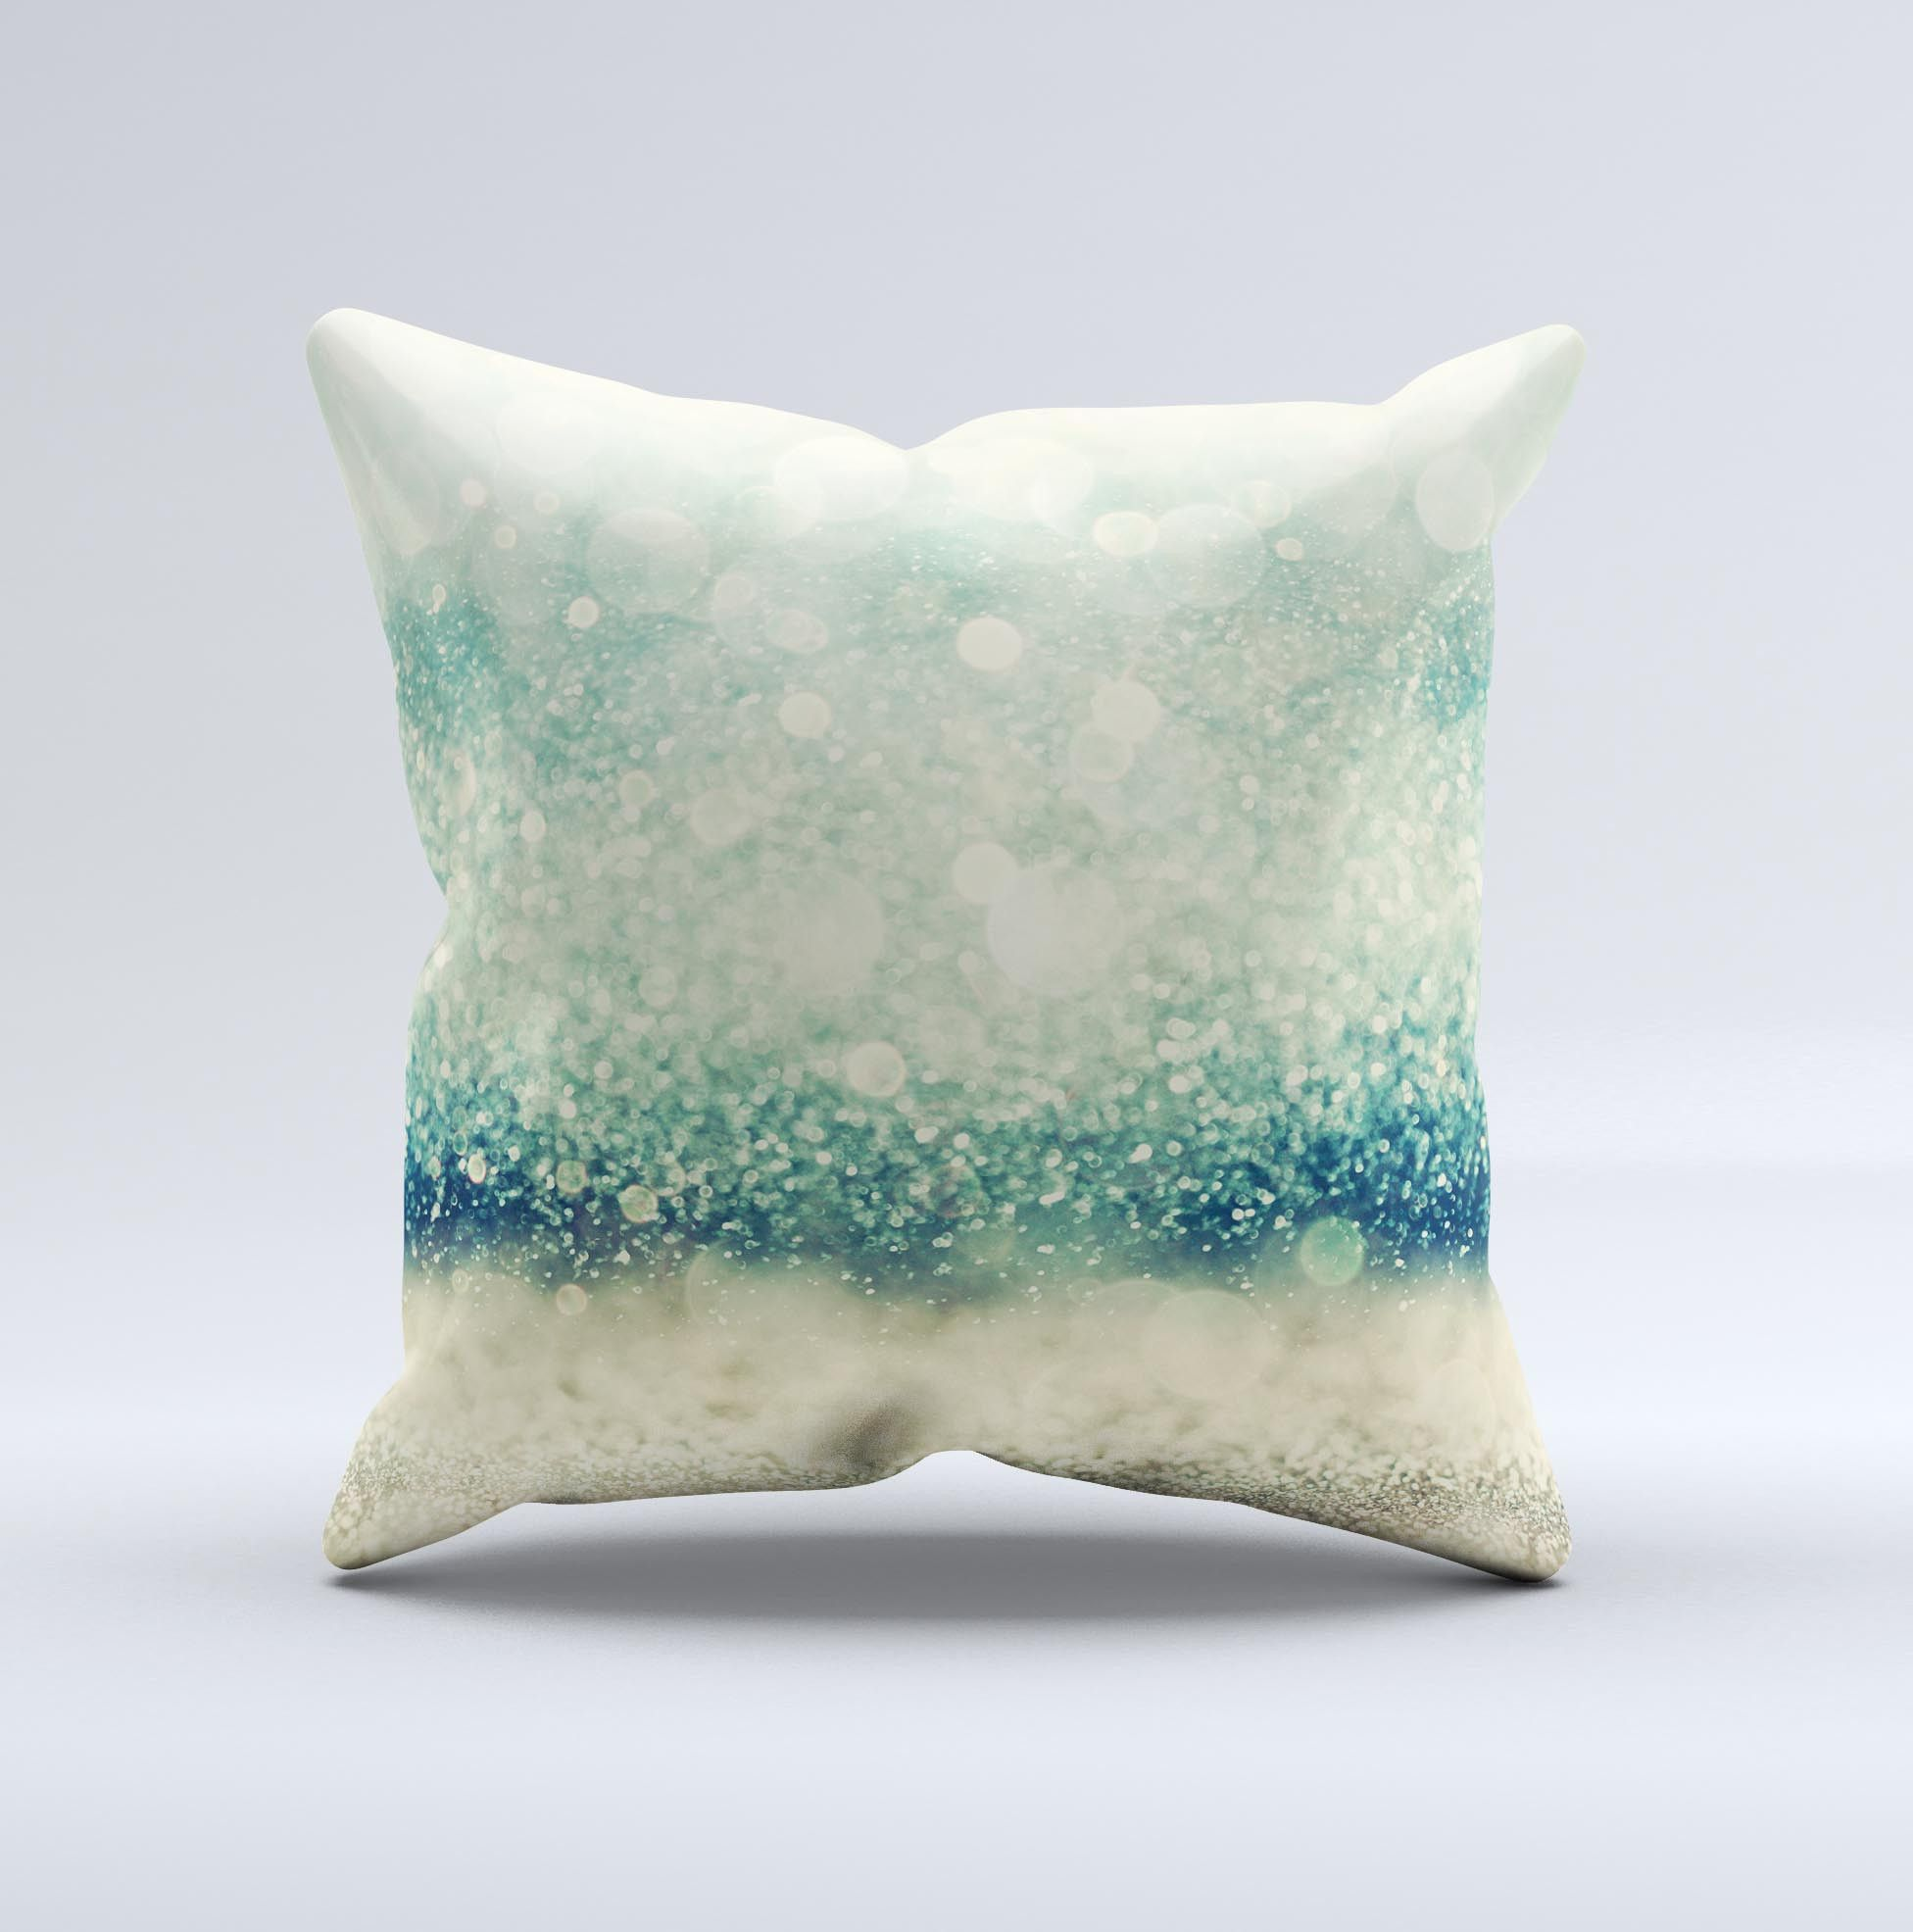 The Teal and Gold Unfocused Orbs of Light ink-Fuzed Decorative Throw Pillow from DesignSkinz